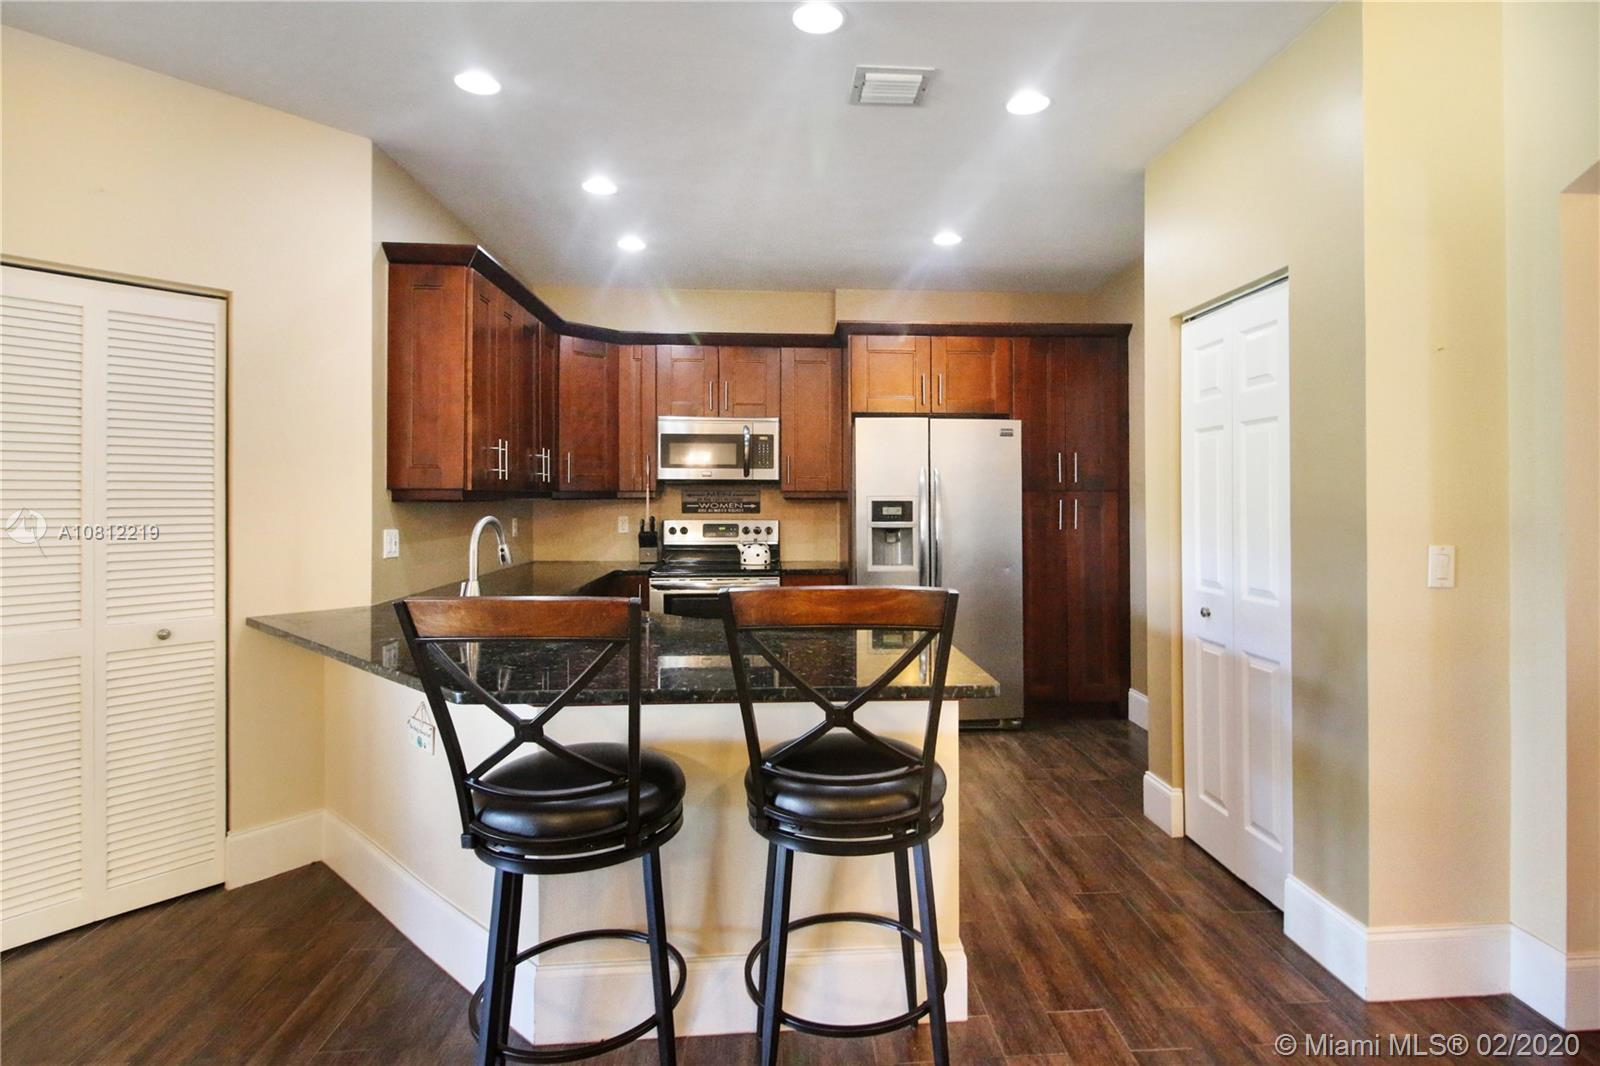 Fully remodeled single story, split floor plan townhome in popular Waterways! This home boasts an AC replaced in 2016, new water heater, freshly painted exterior and brand new roof. Main living area has beautiful 'wood' tile with open kitchen concept featuring granite counter tops, stainless steel appliances and wood Shaker cabinets. HOA includes cable tv, roof, exterior insurance, lawn maintenance, wifi, trash, community pool and 24 hour manned gate.  This community is all ages and FHA and VA approved! Best of all, dogs welcome!